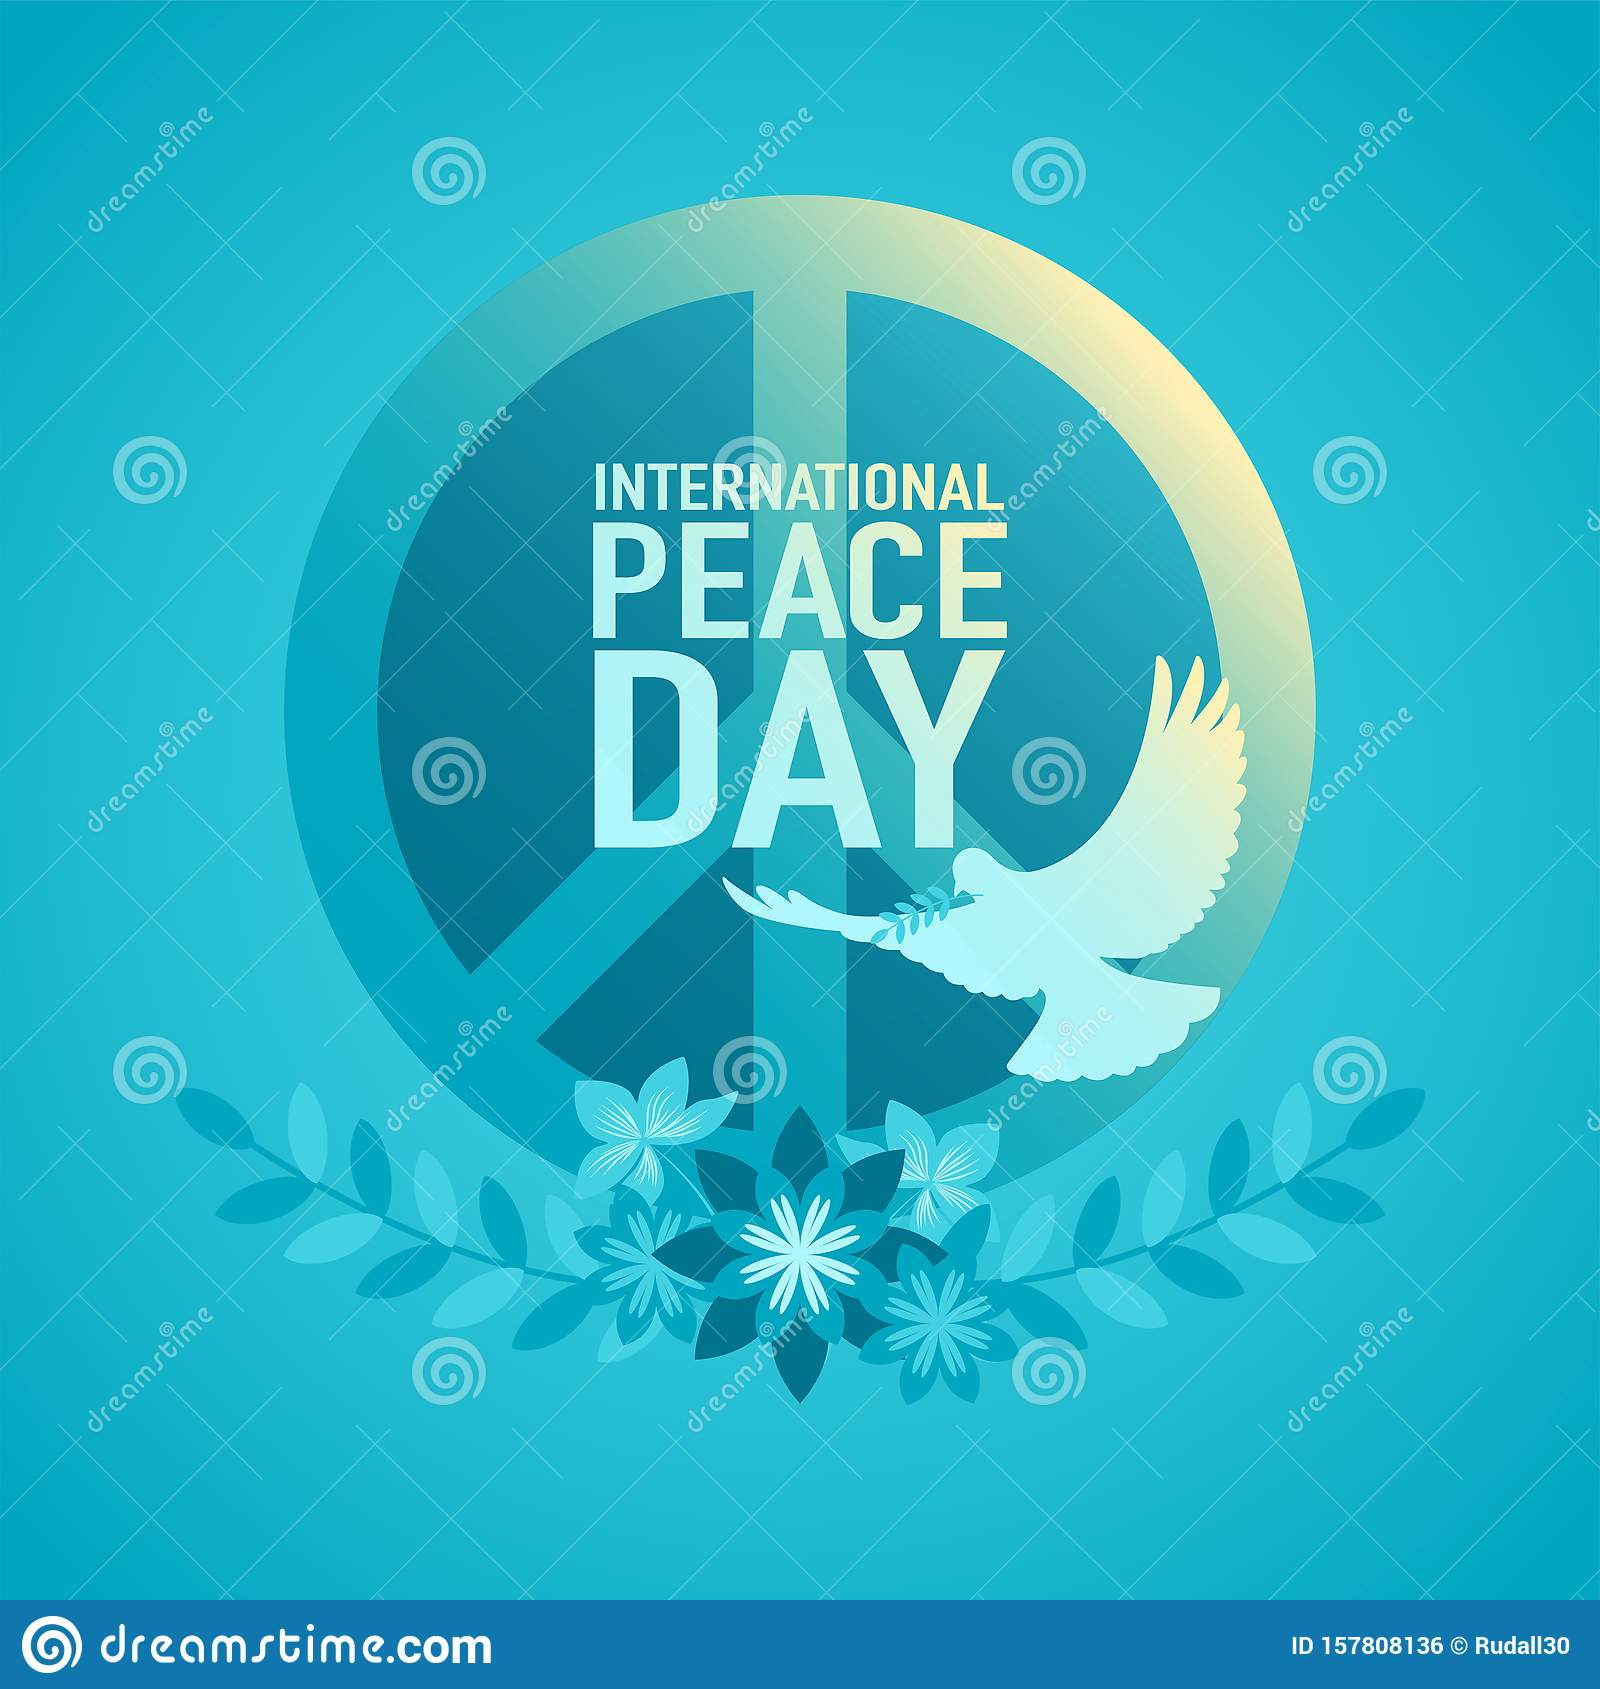 Decorative Peace Symbol for International Day of Peace